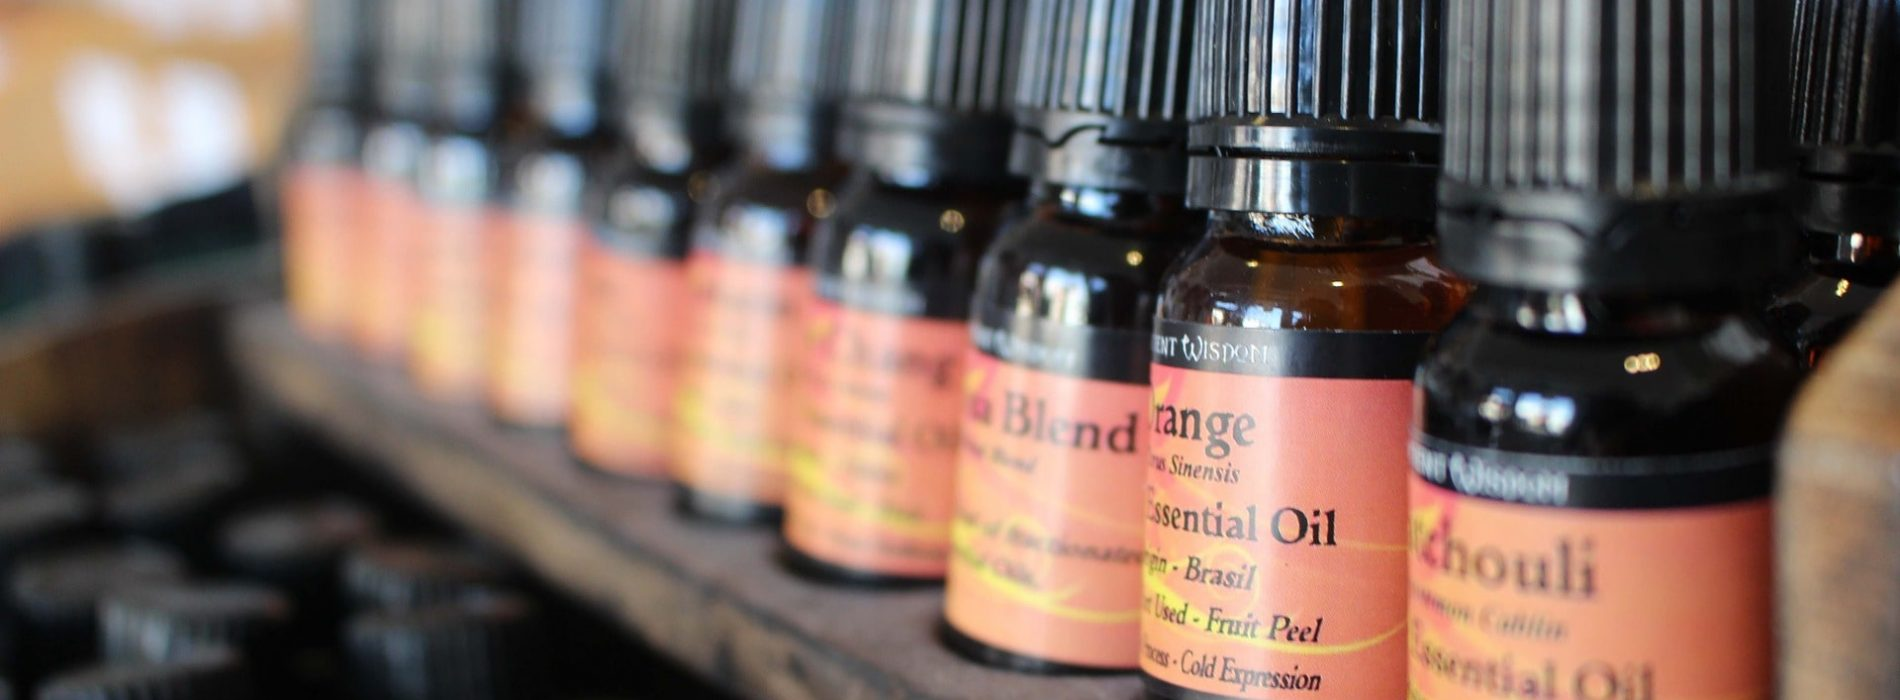 How to Use Essential Oils for Common Complaints